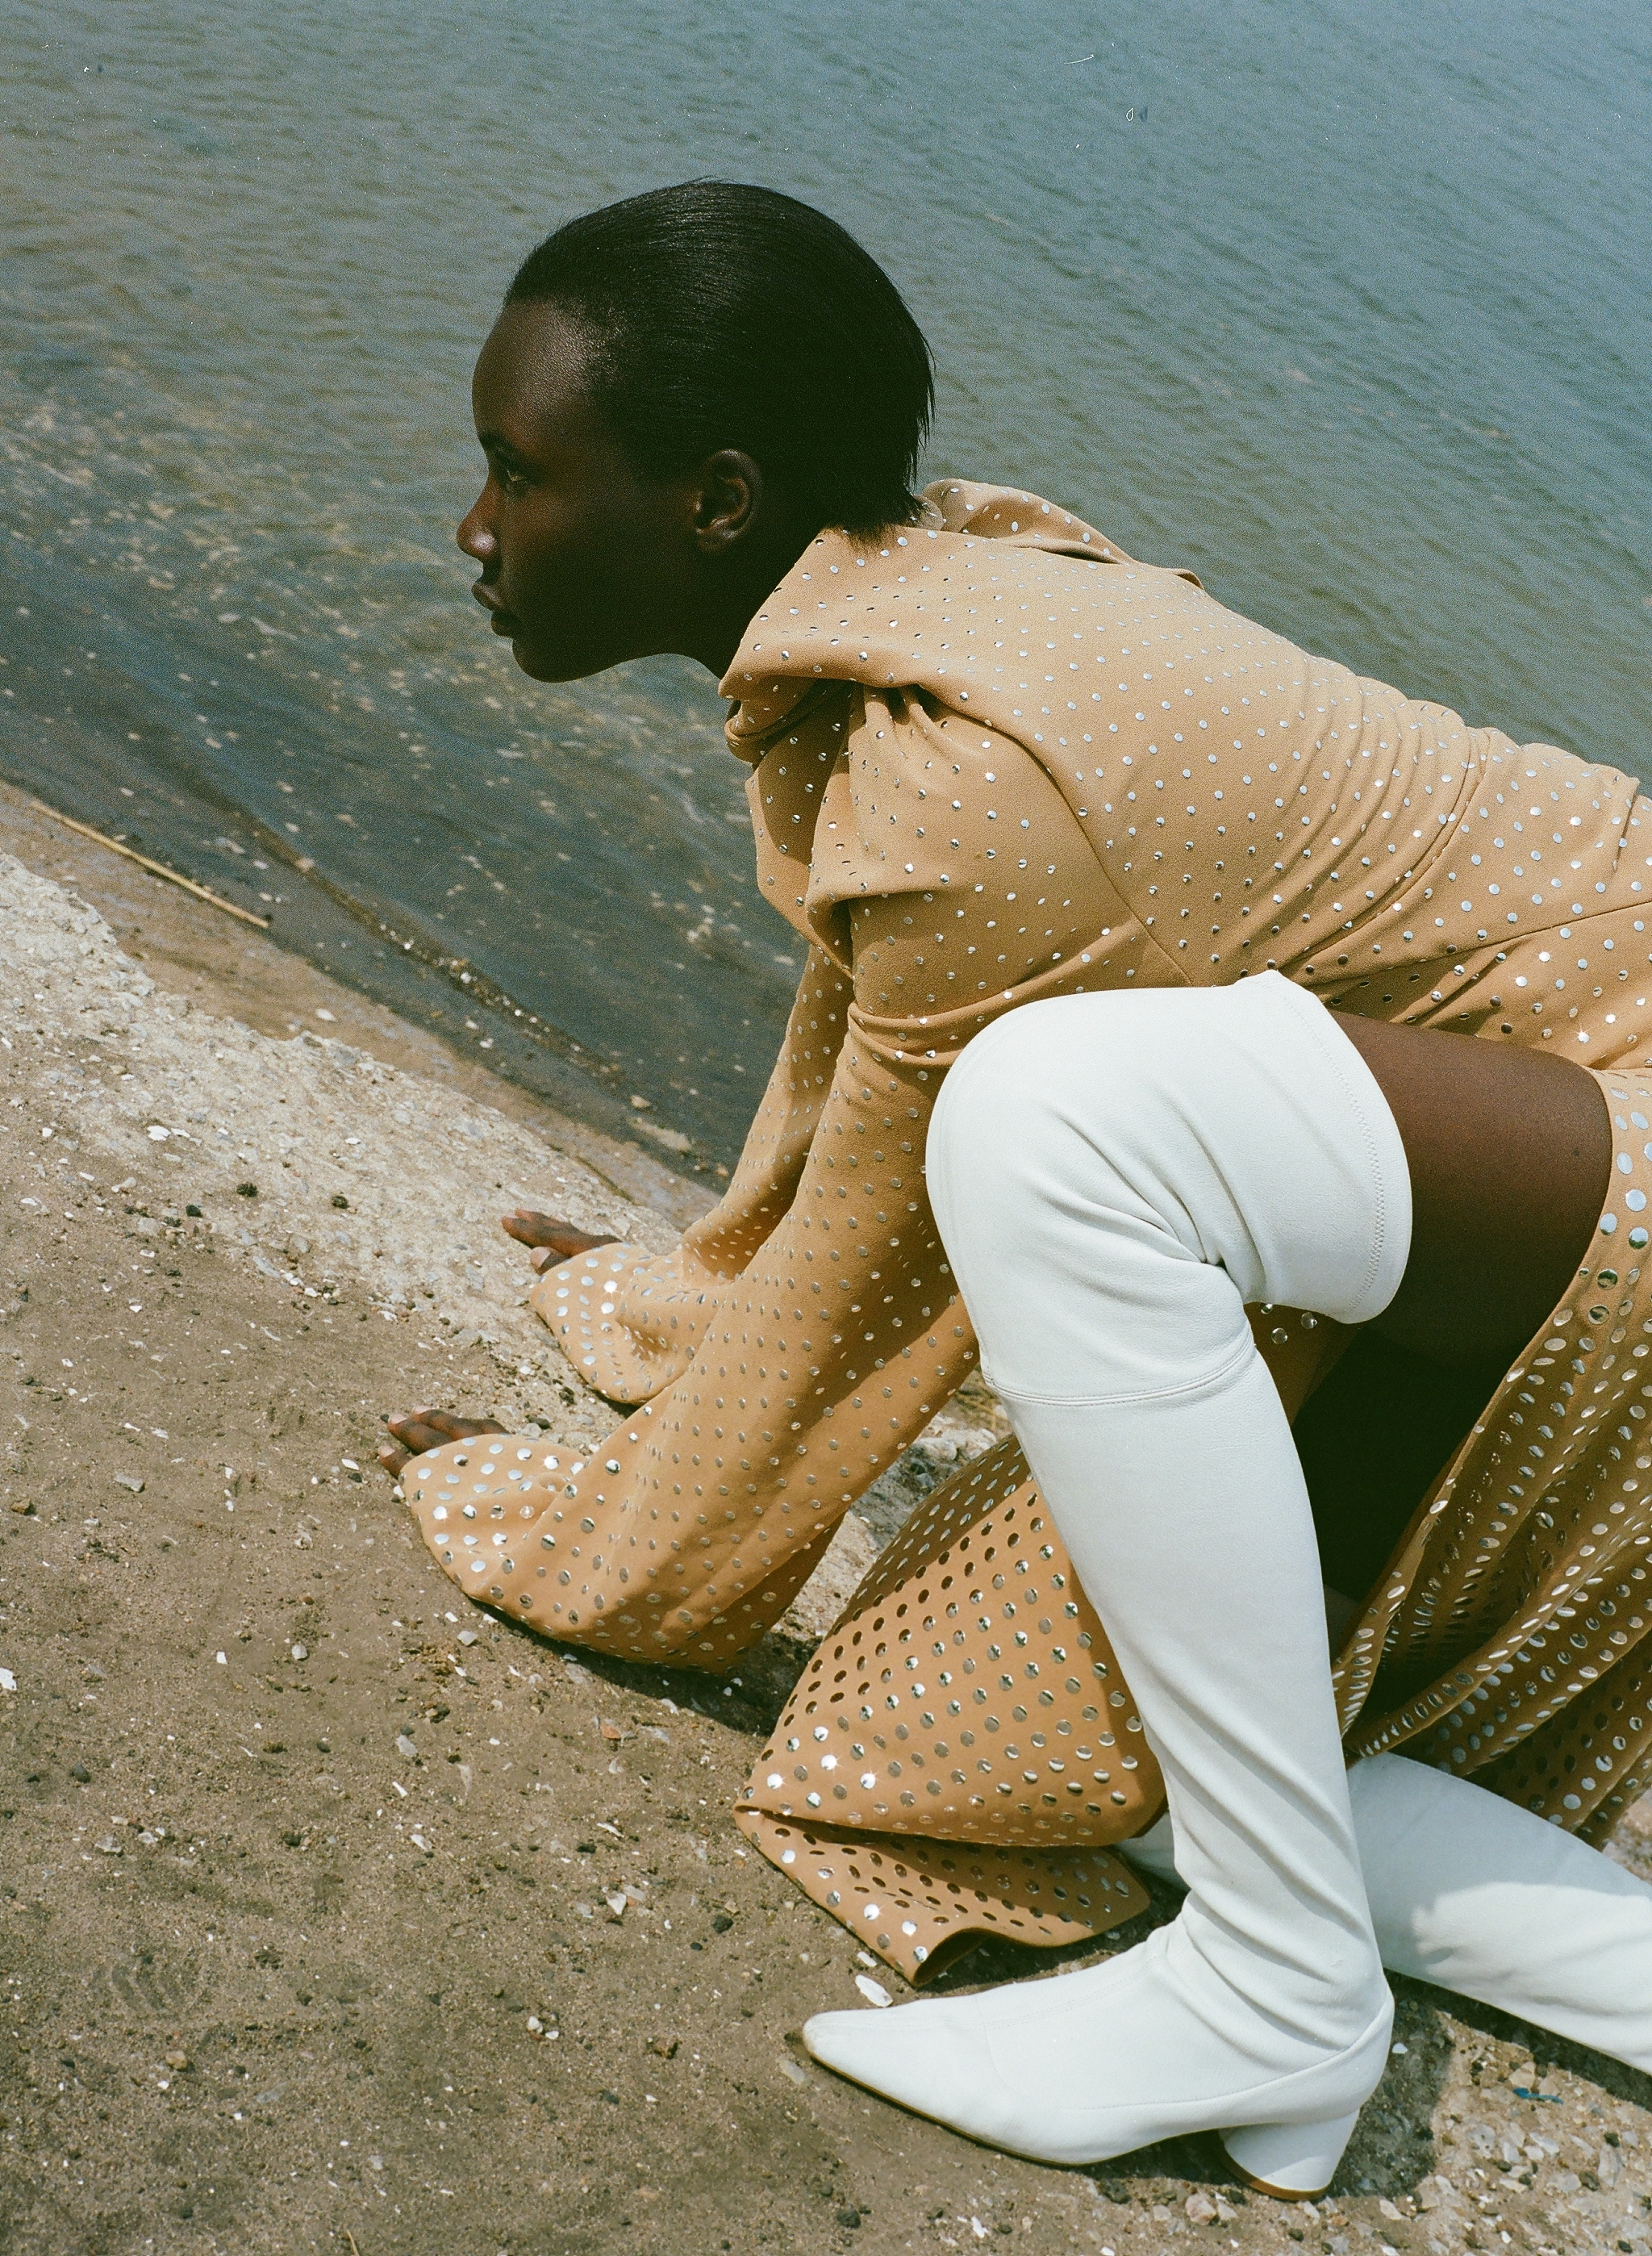 """high summer"" - tricia akello photographed by angela baltra for v magazine"